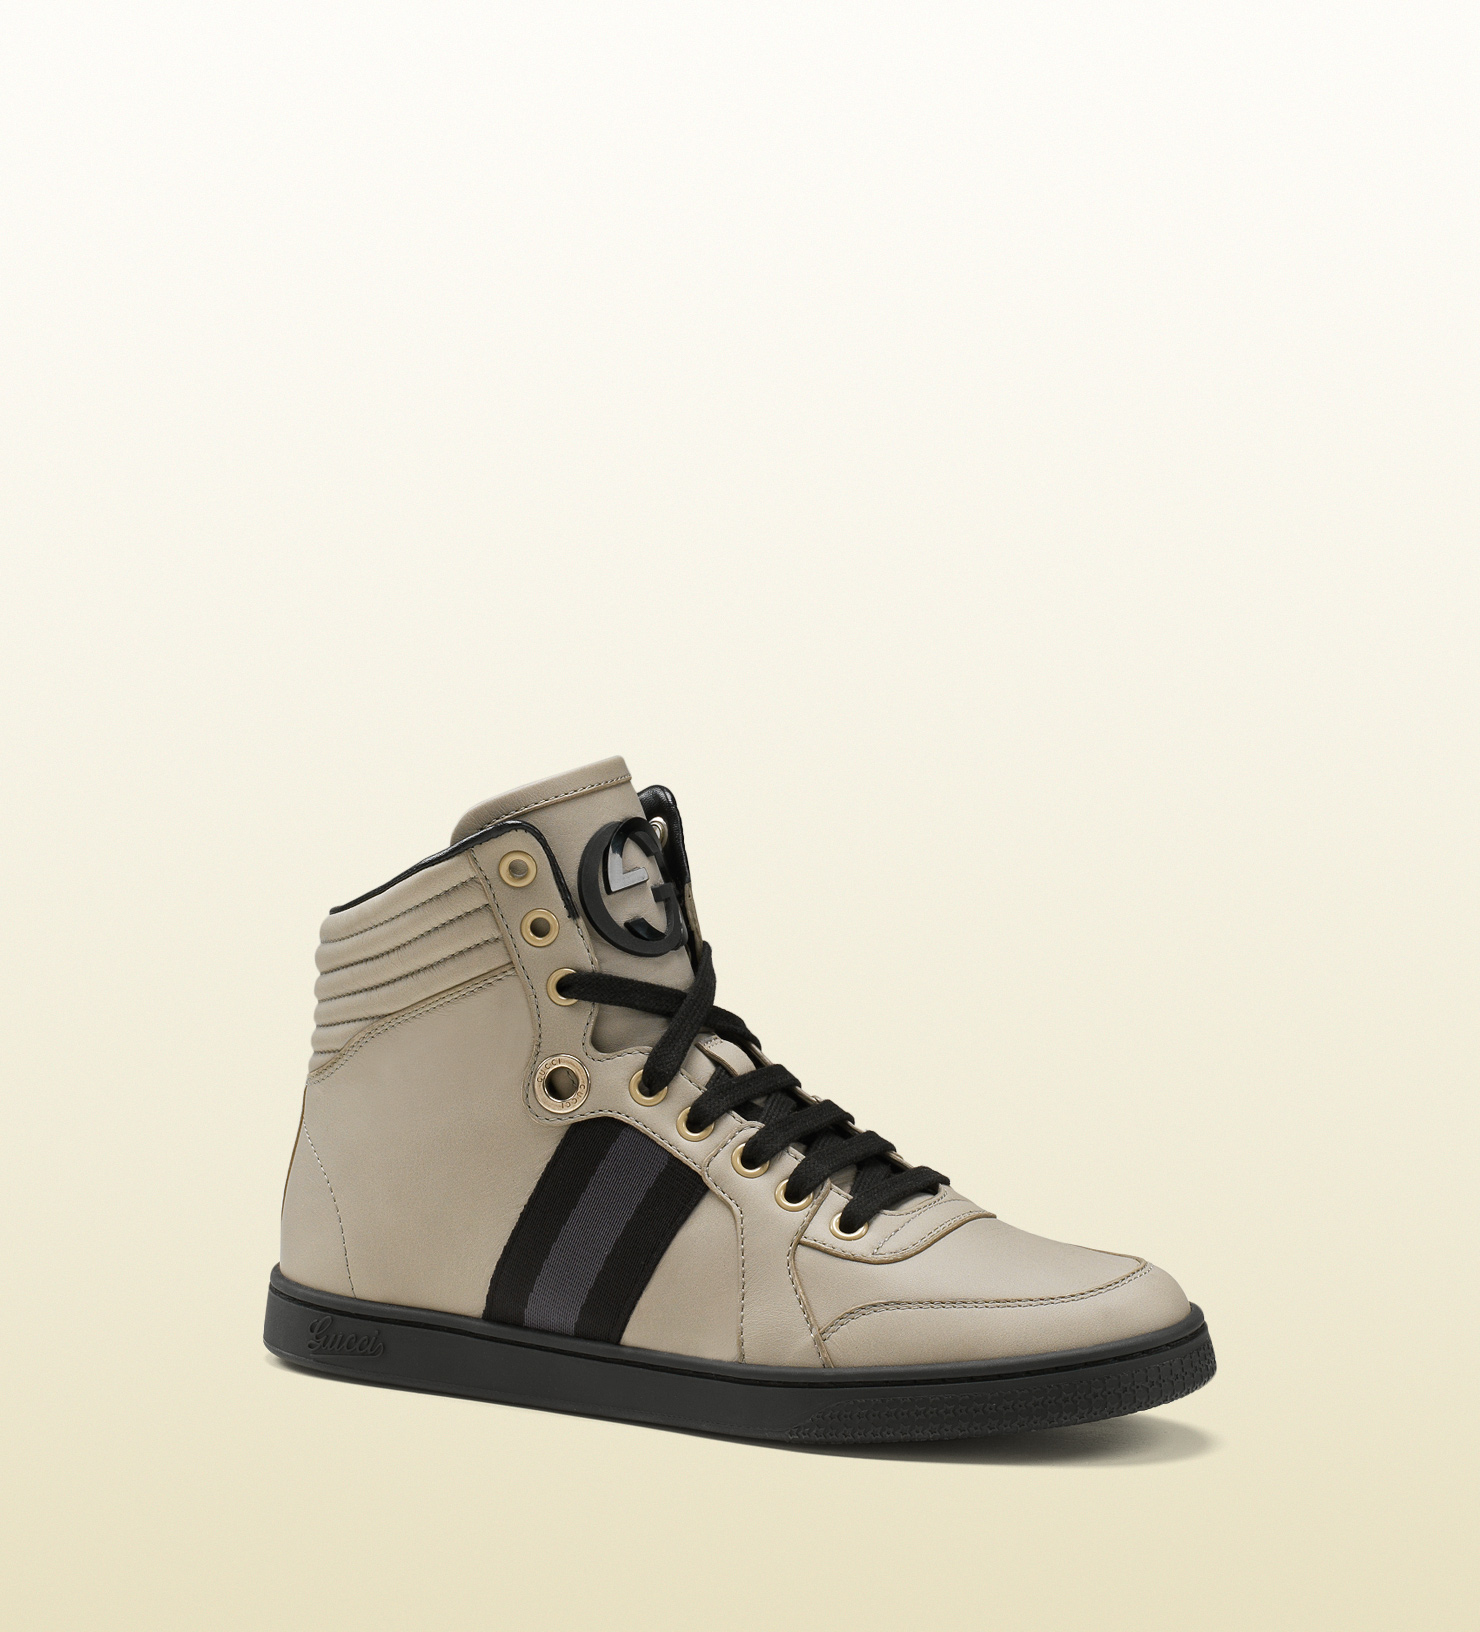 Lyst - Gucci Women s High-top Sneaker From Viaggio Collection in Gray 26cf2773d